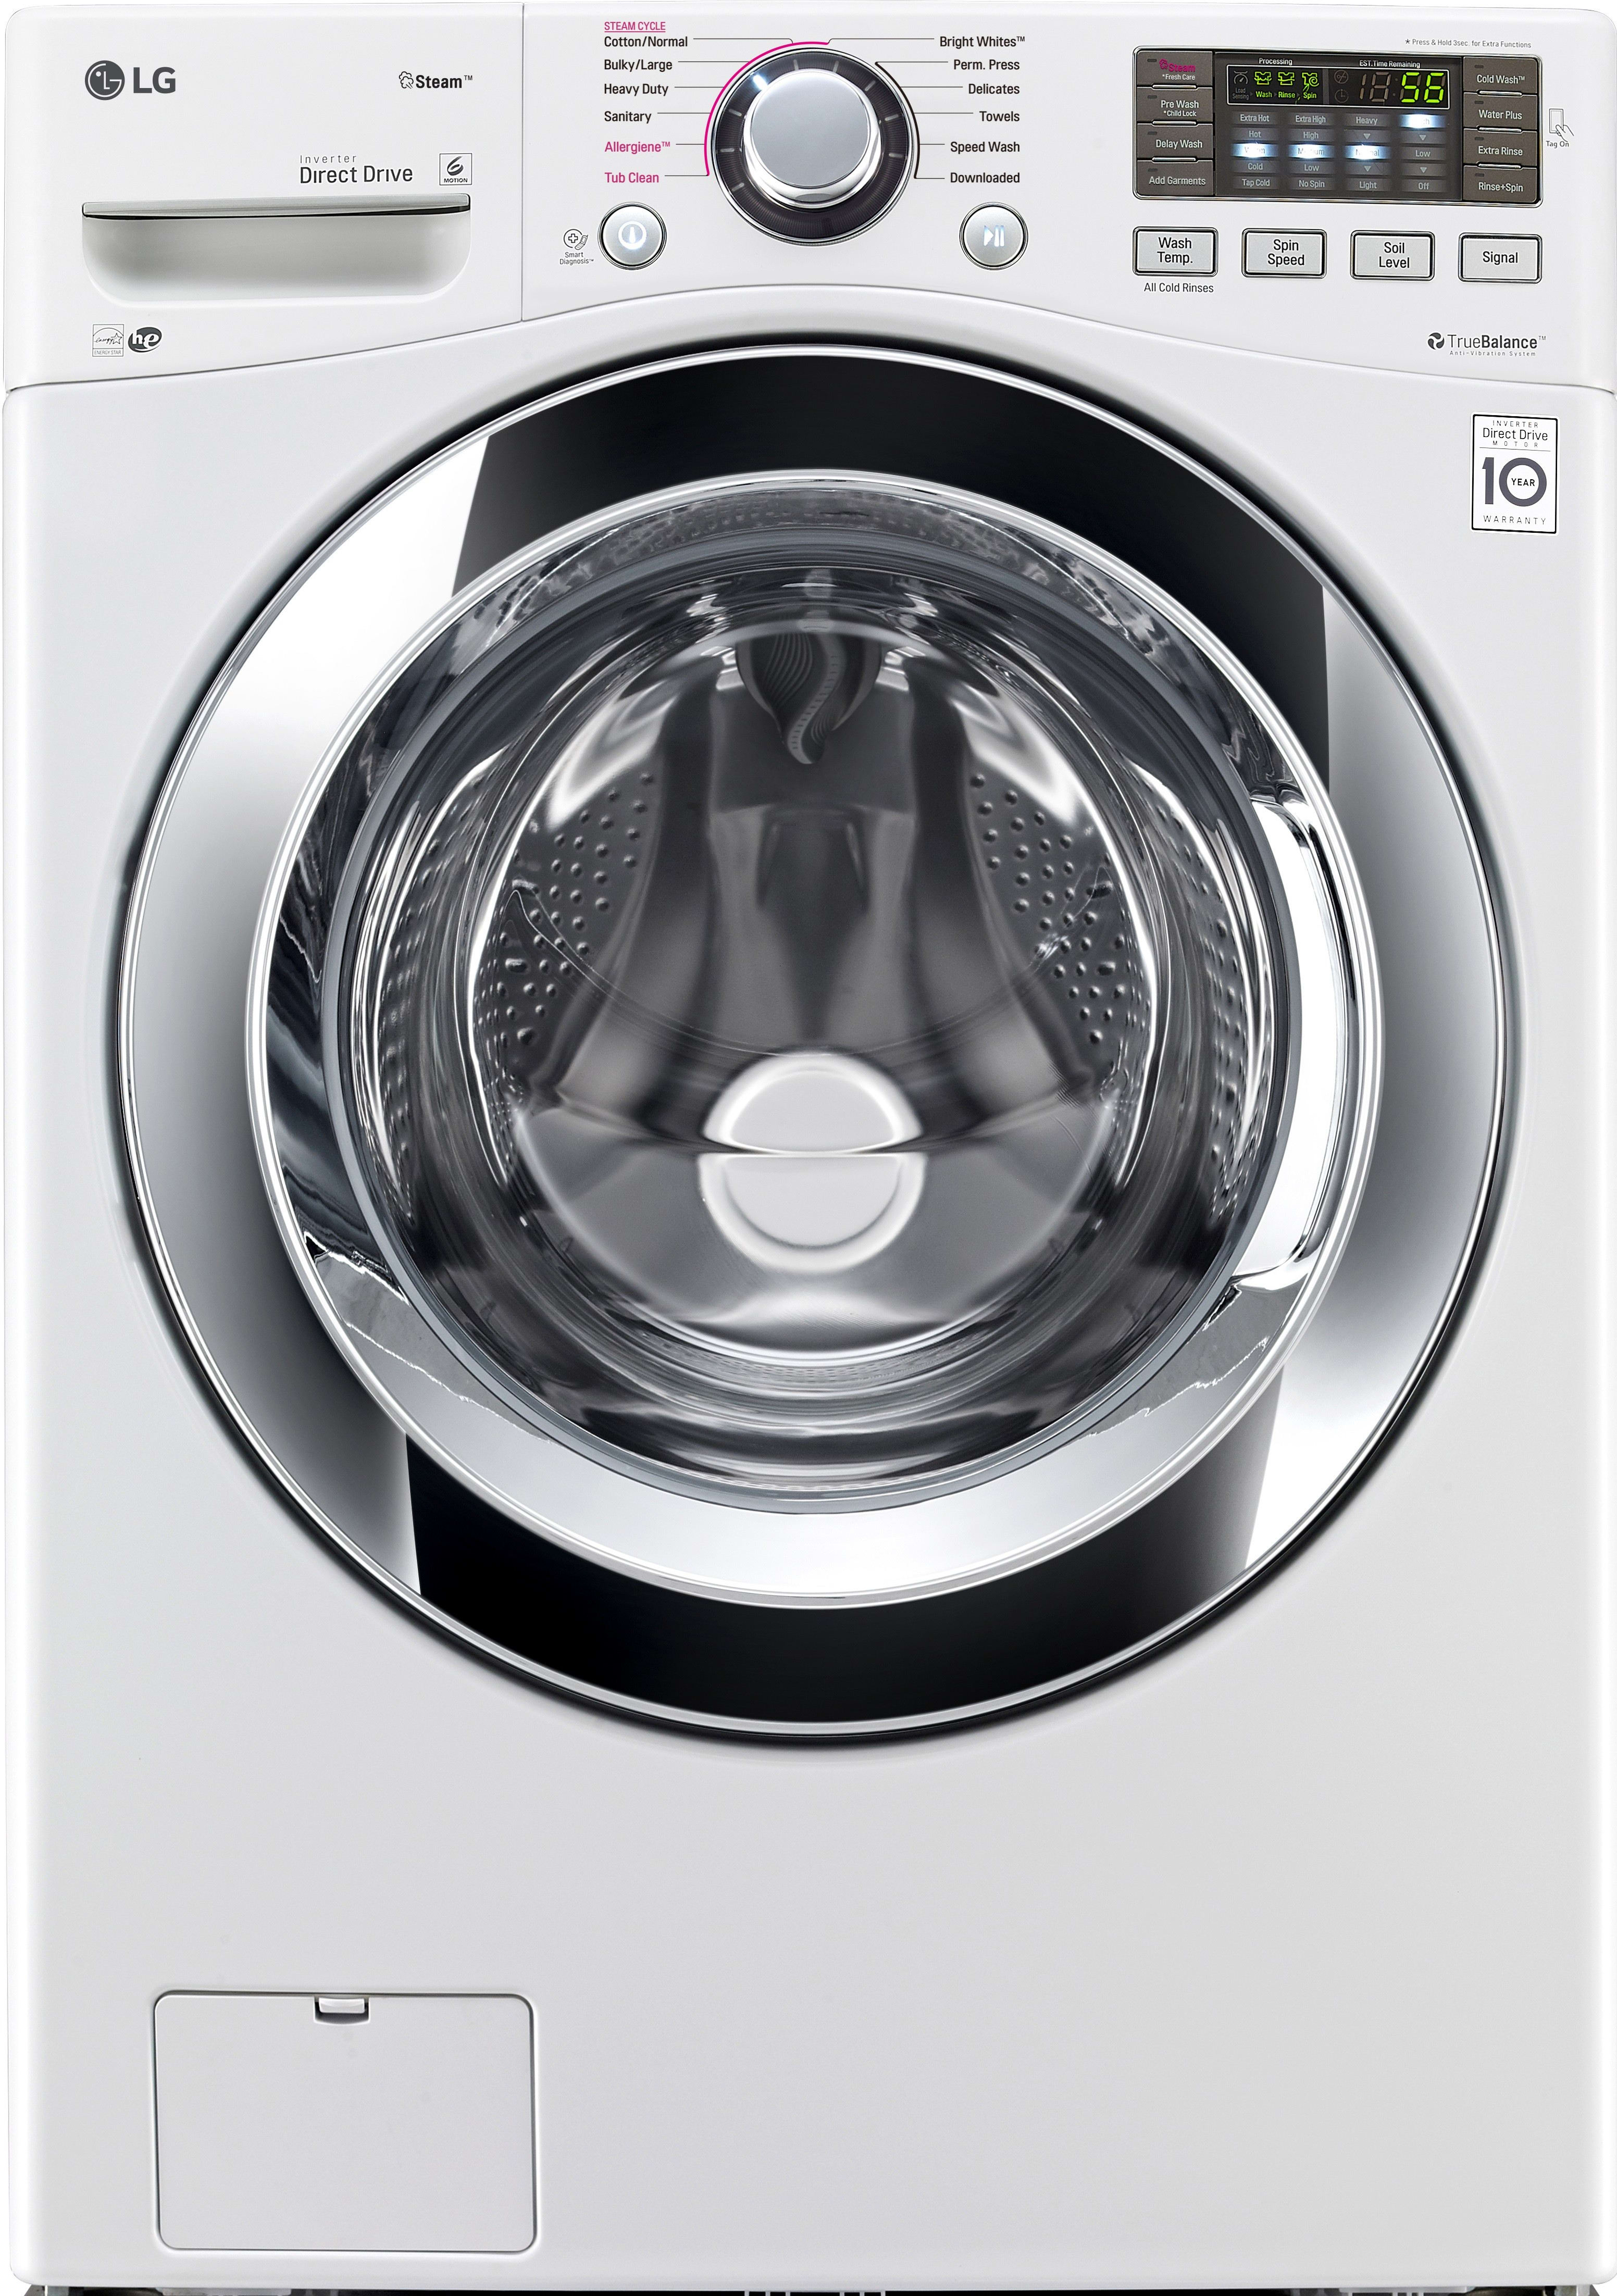 lg wm3670hwa 27 inch 45 cu ft front load washer with steam smart thinq wifi nfc tagon technology sanitary cycle 12 wash cycles allergen cycle